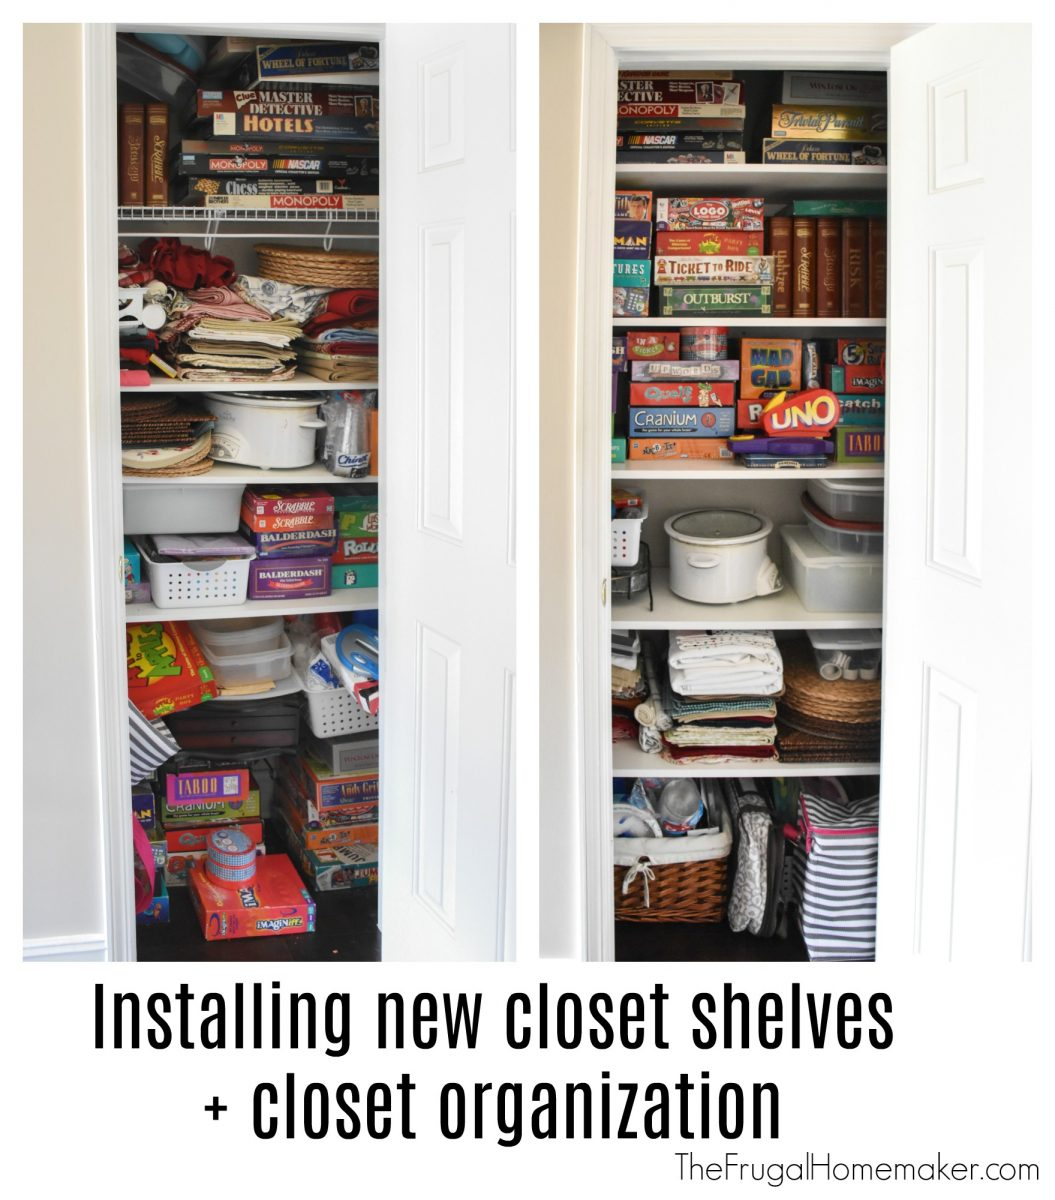 Installing-new-closet-shelving-and-closet-organization-1055x1200.jpg